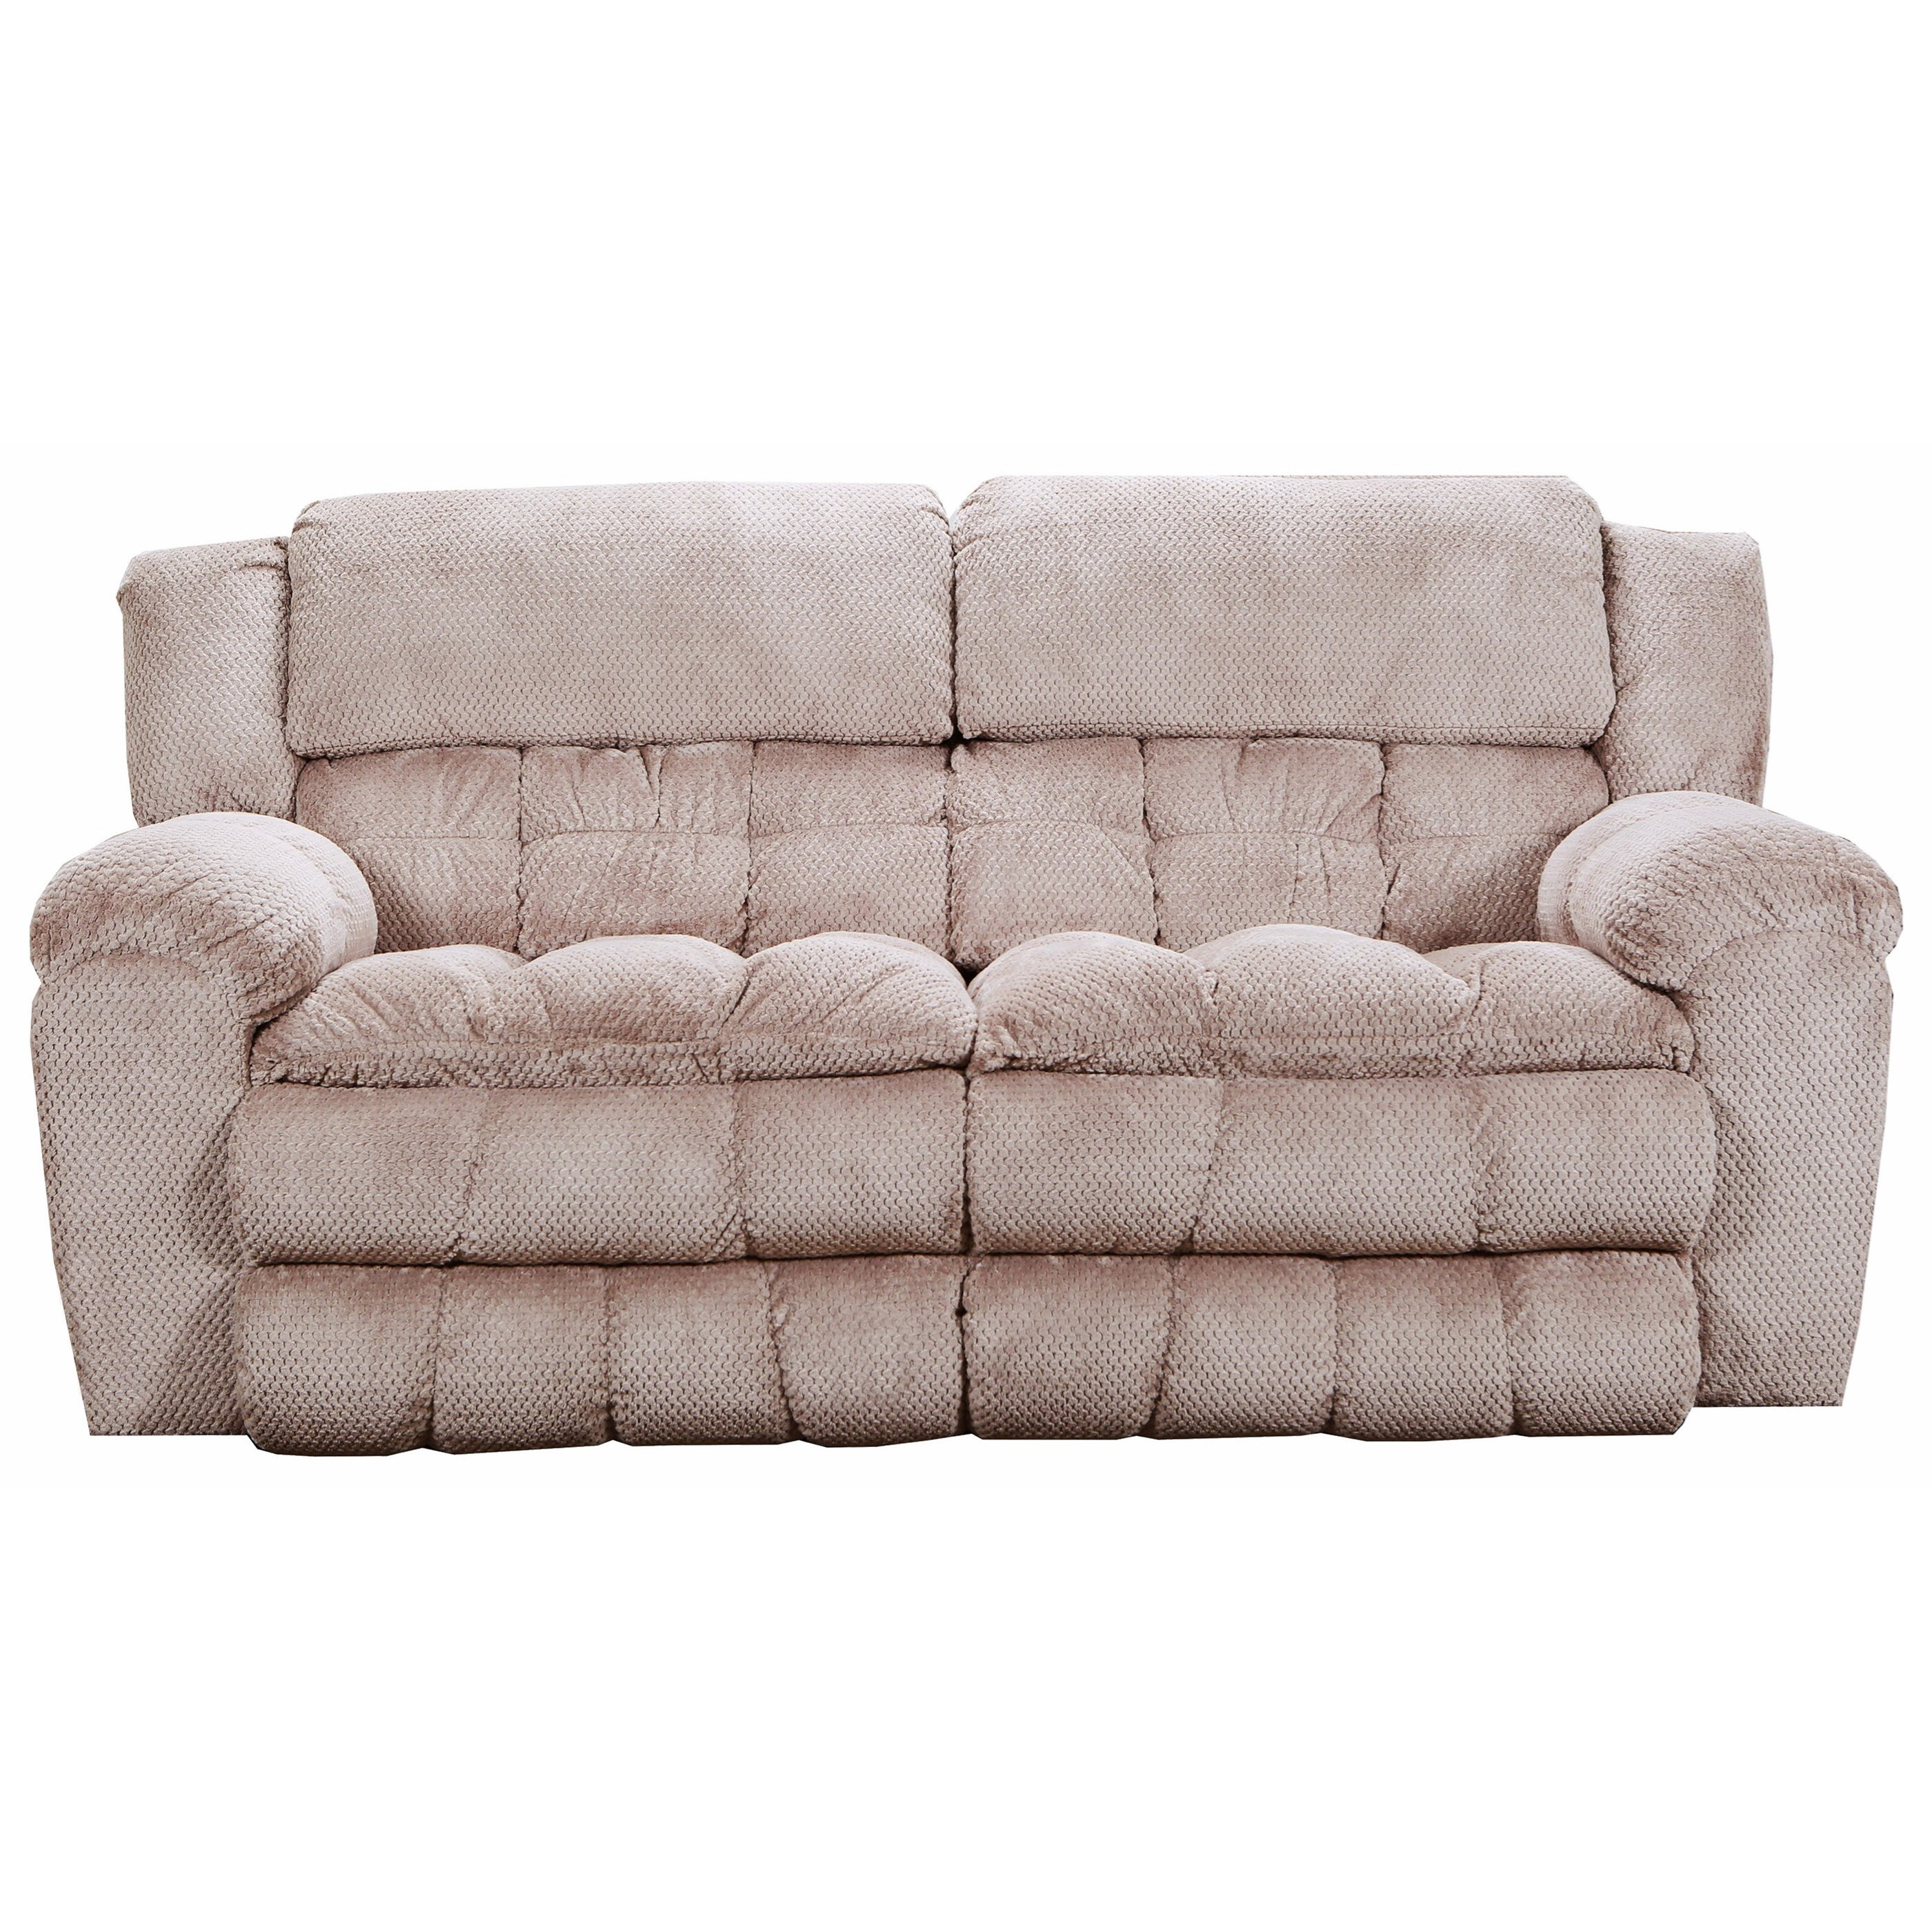 United Furniture Industries 50580BR Double Motion Sofa - Item Number: 50580BRSOFA